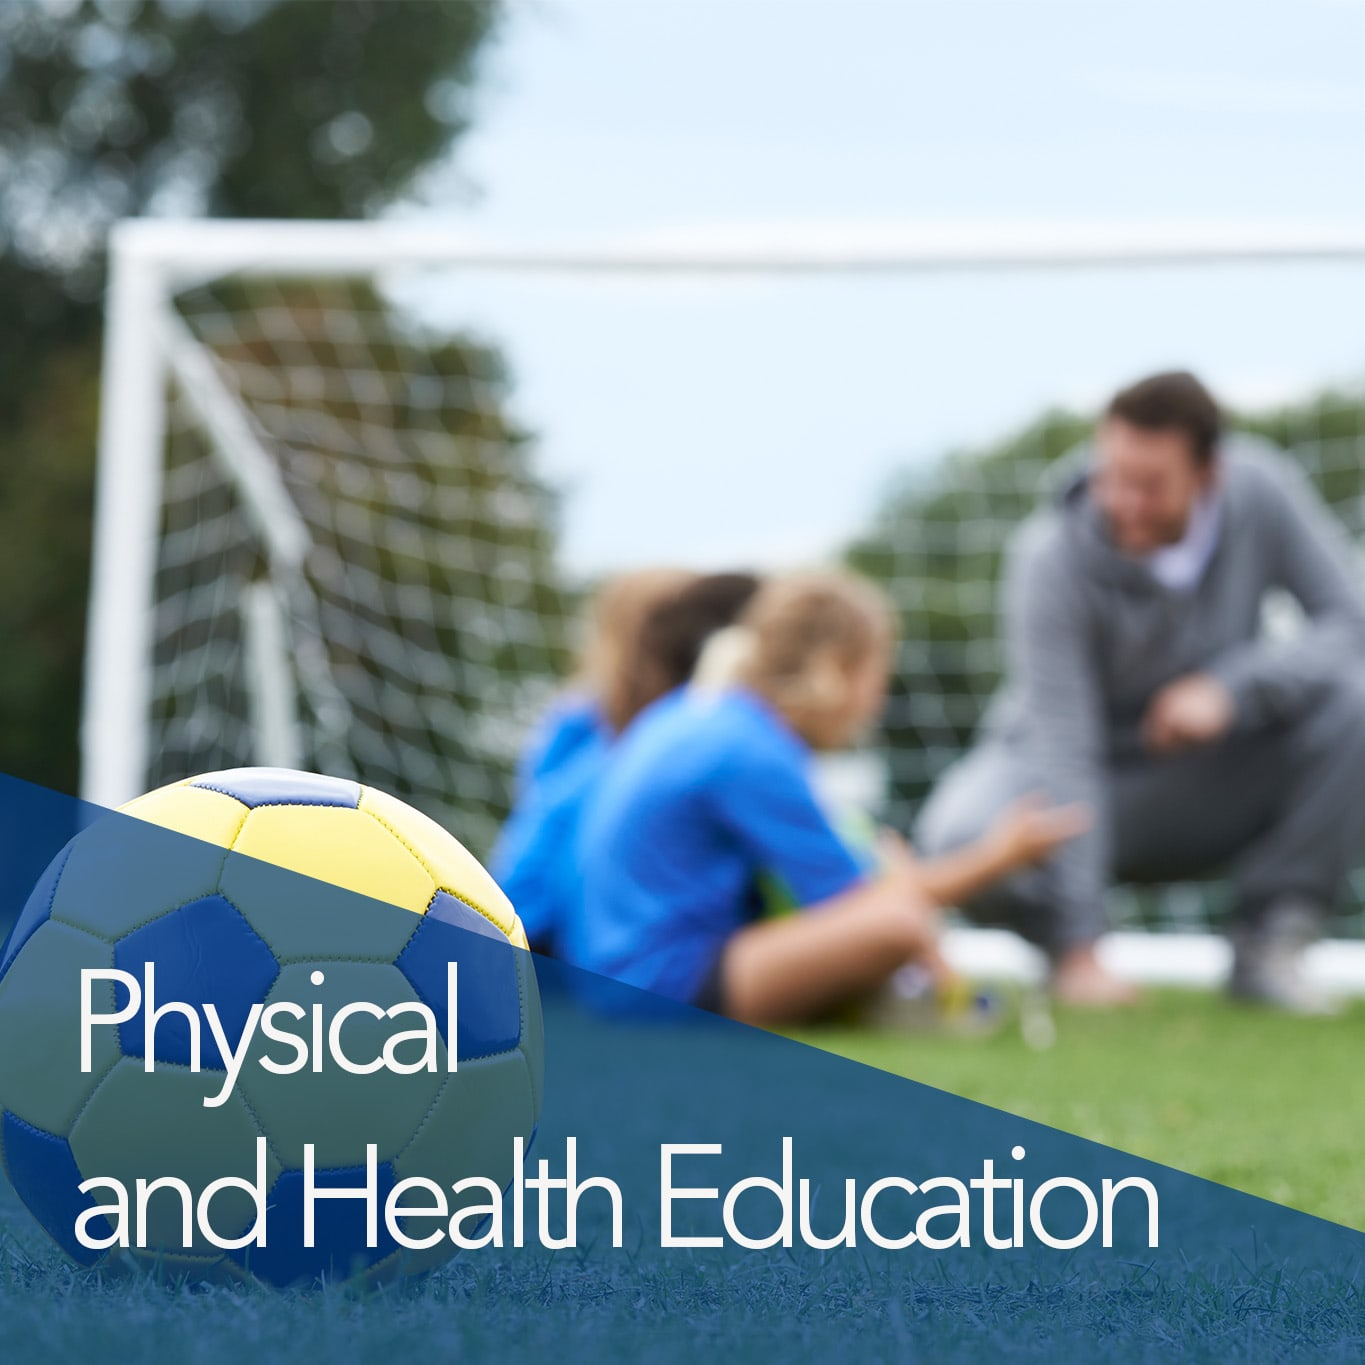 Click here to browse the Human Kinetics Physical and Health Education collection